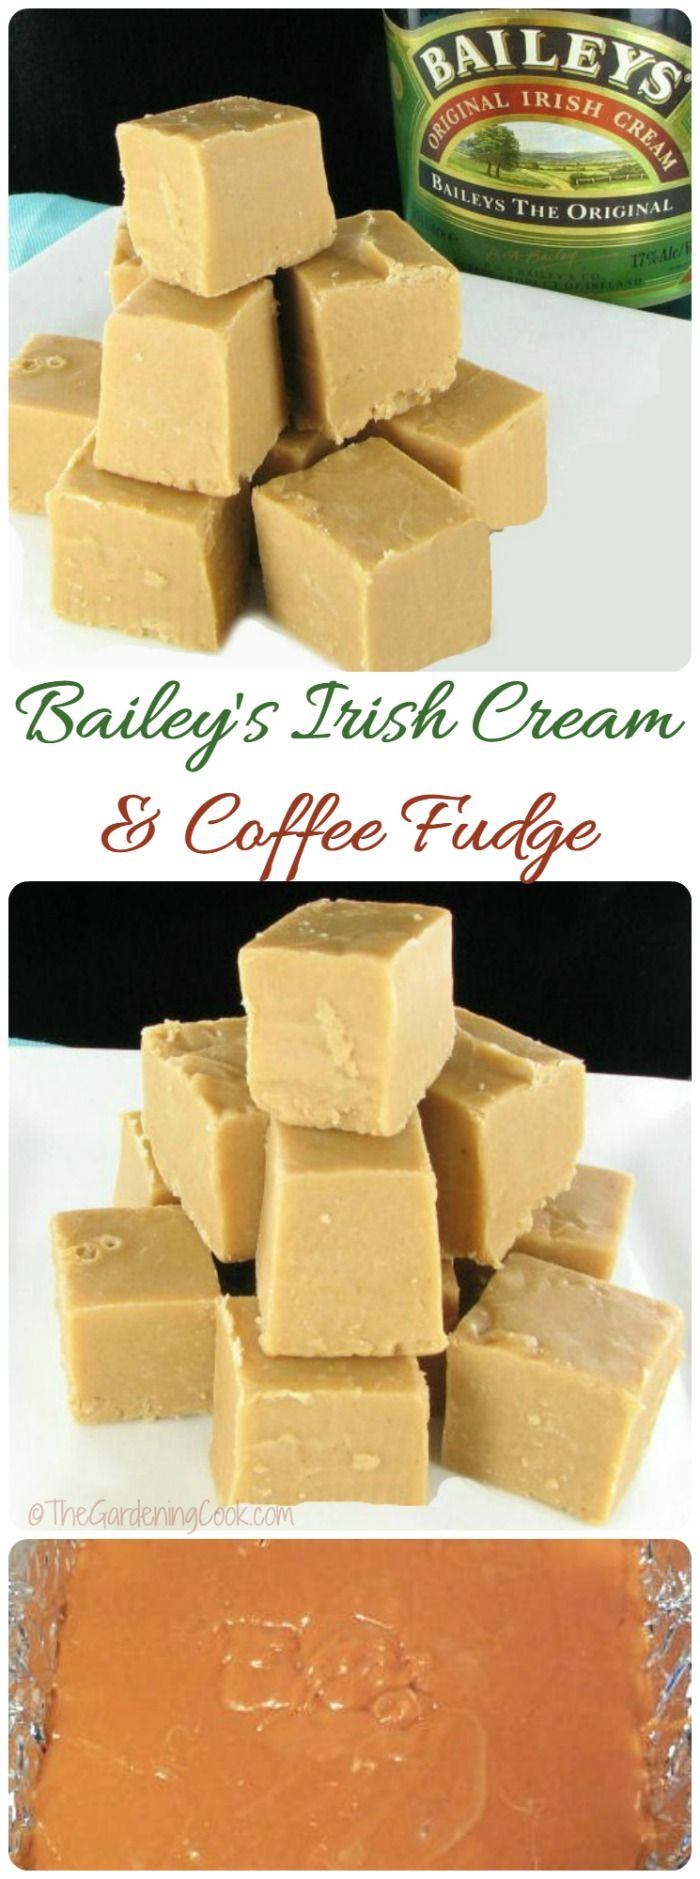 This Bailey's Irish Cream & Coffee fudge is the perfect sweet treat for your holiday table. It is delicious and so easy to make, too.